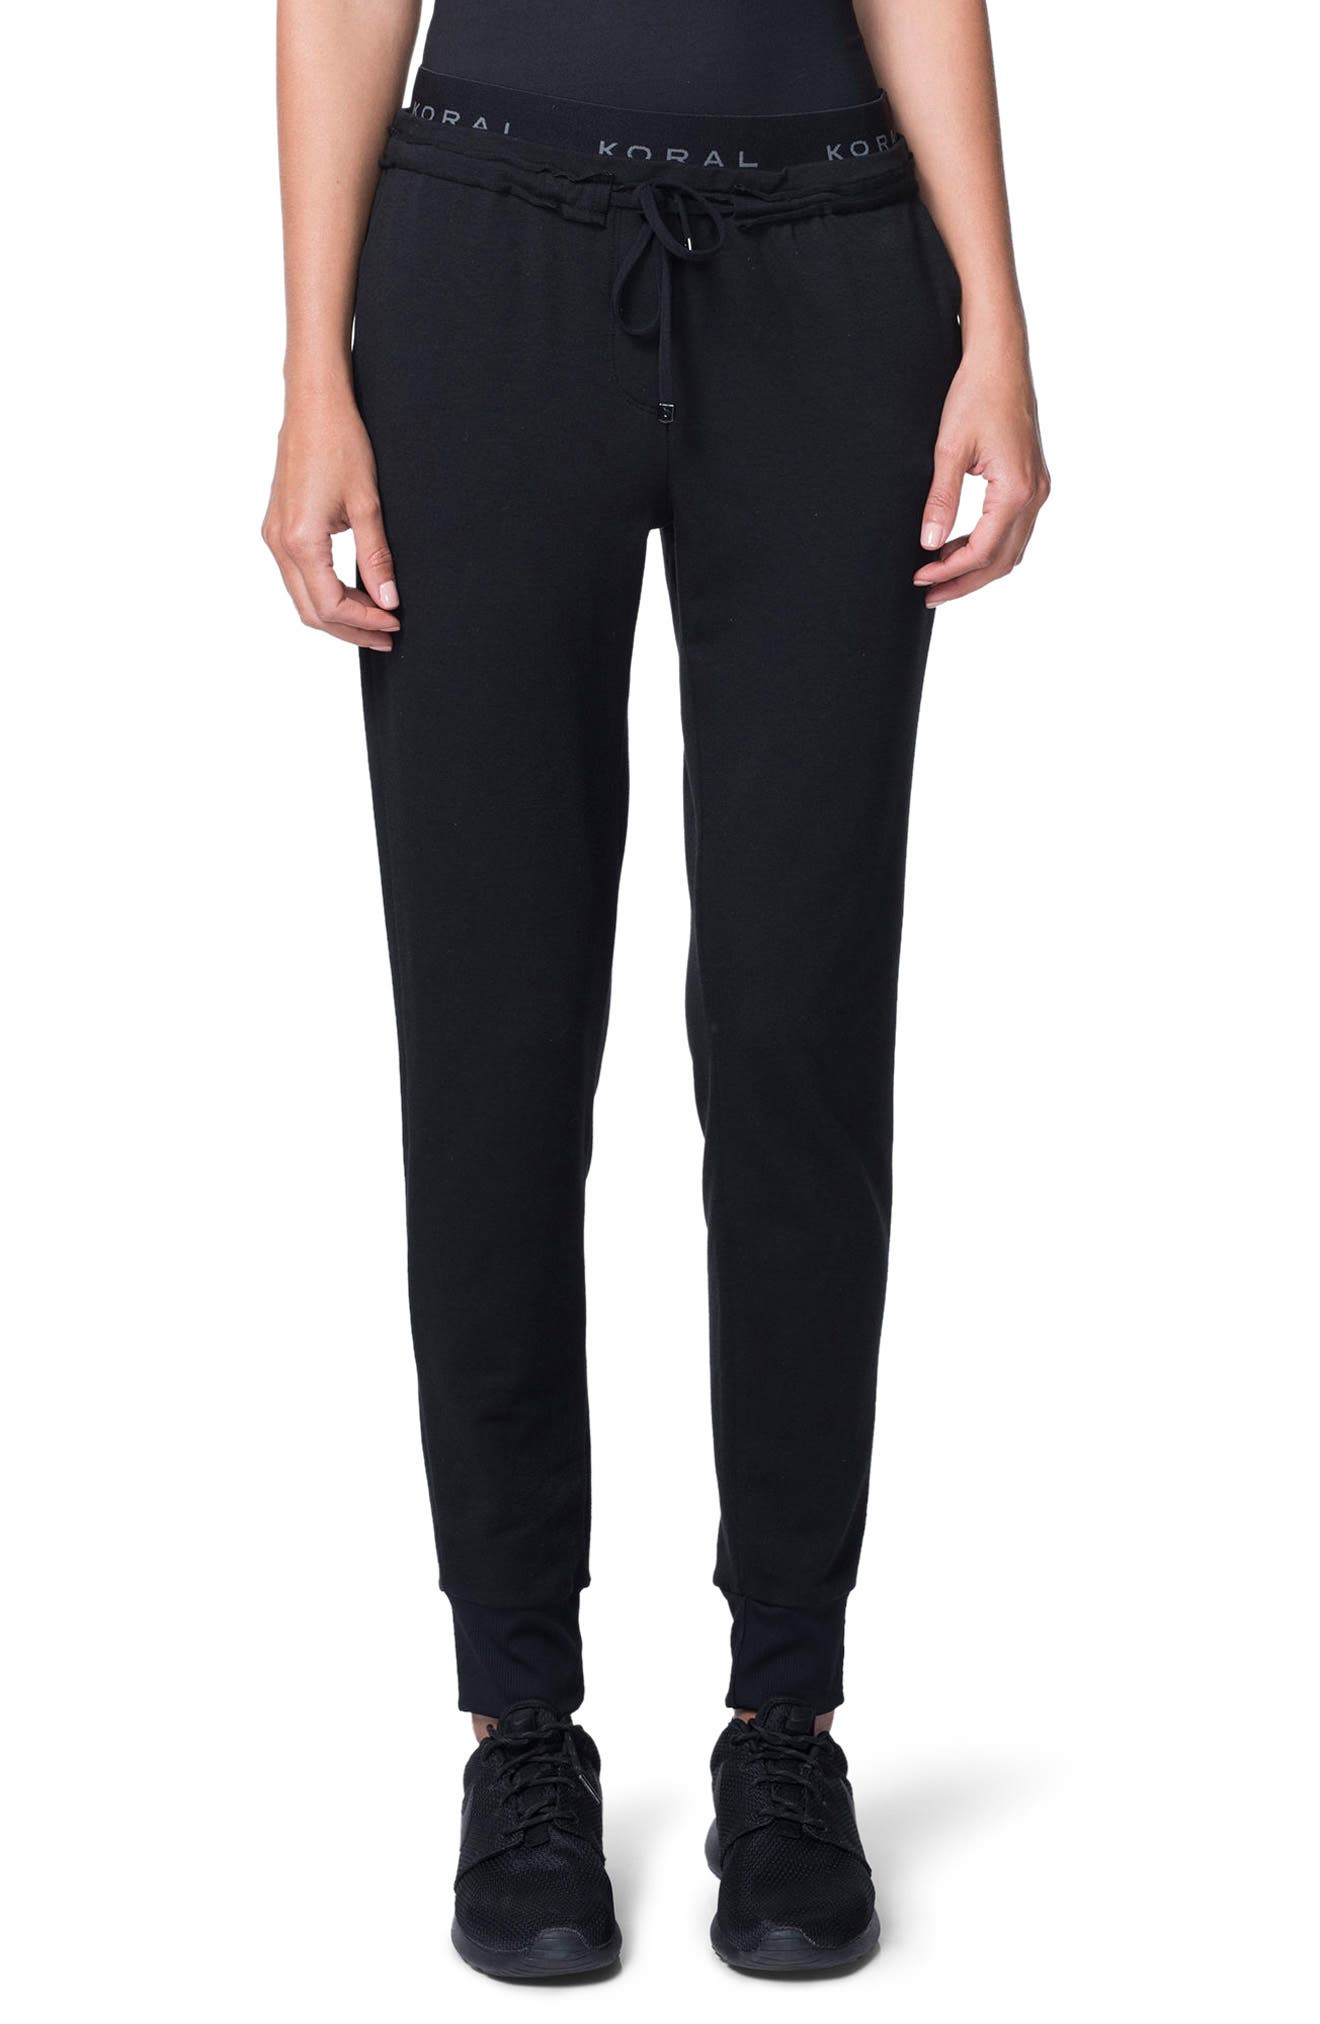 Station French Terry Pants,                         Main,                         color, Black